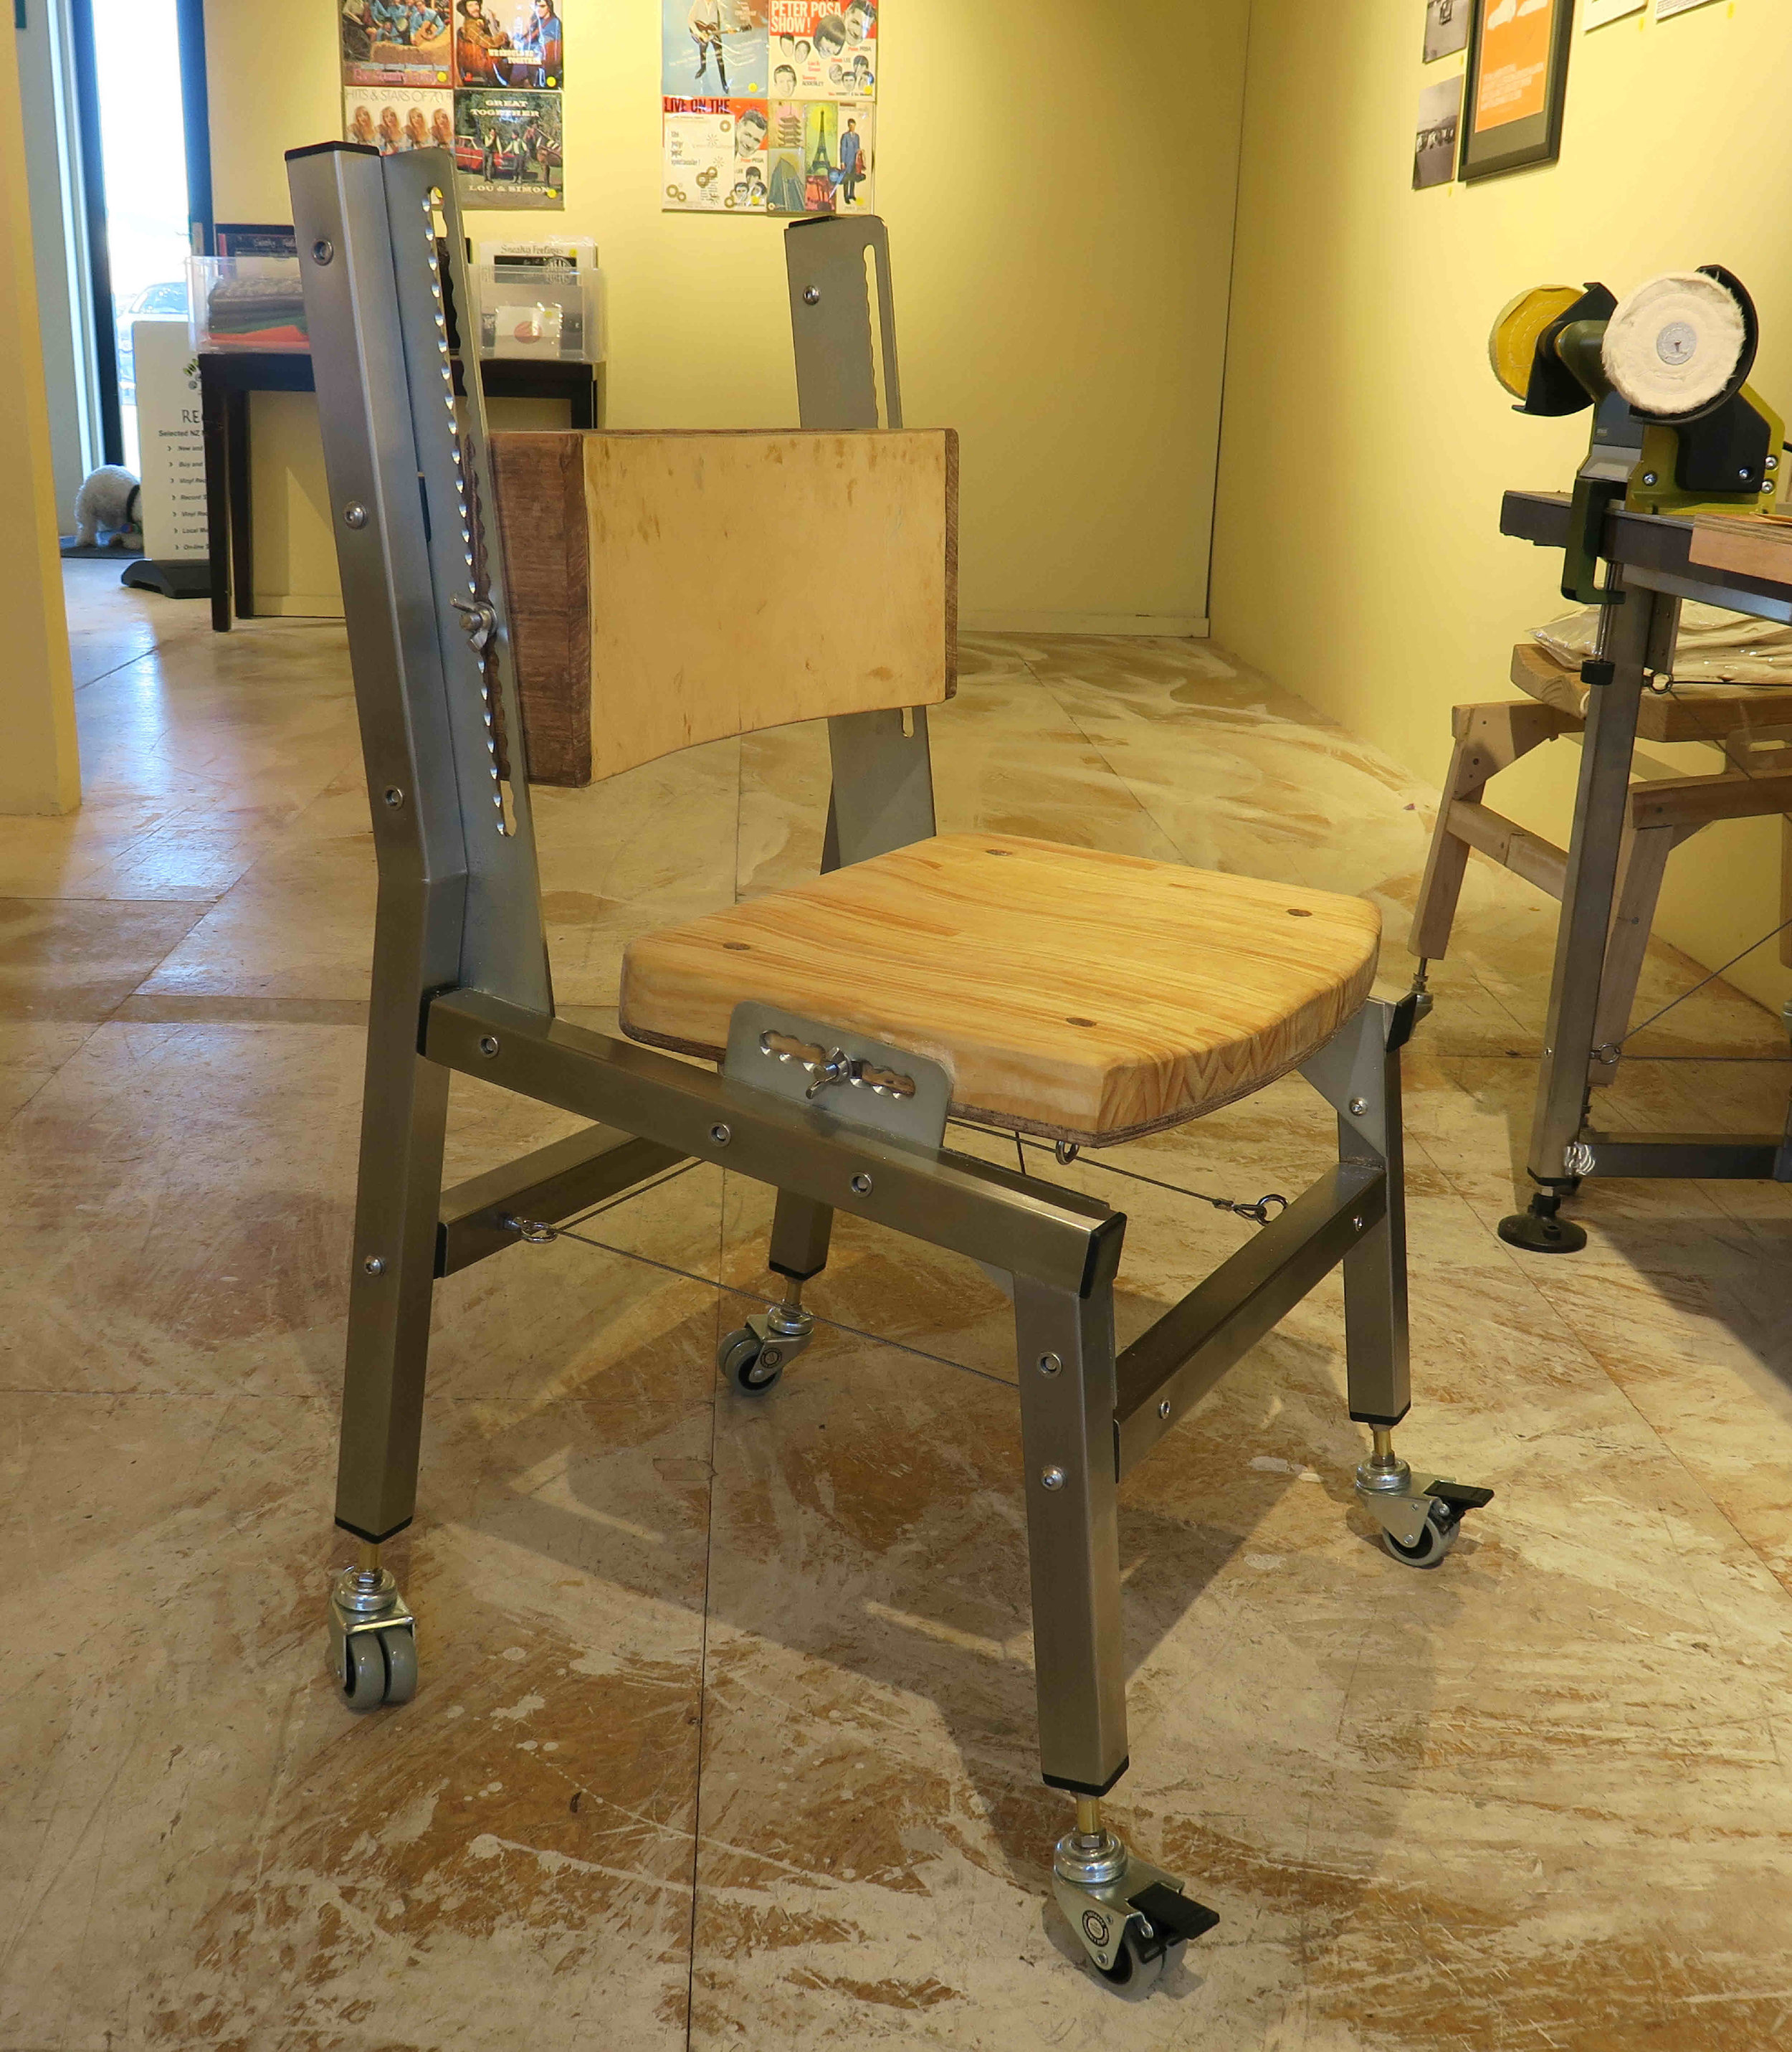 Engineering Workchair 'The 7 degreee chair'    Made to order 12 week delivery lead time from date of confirmed order